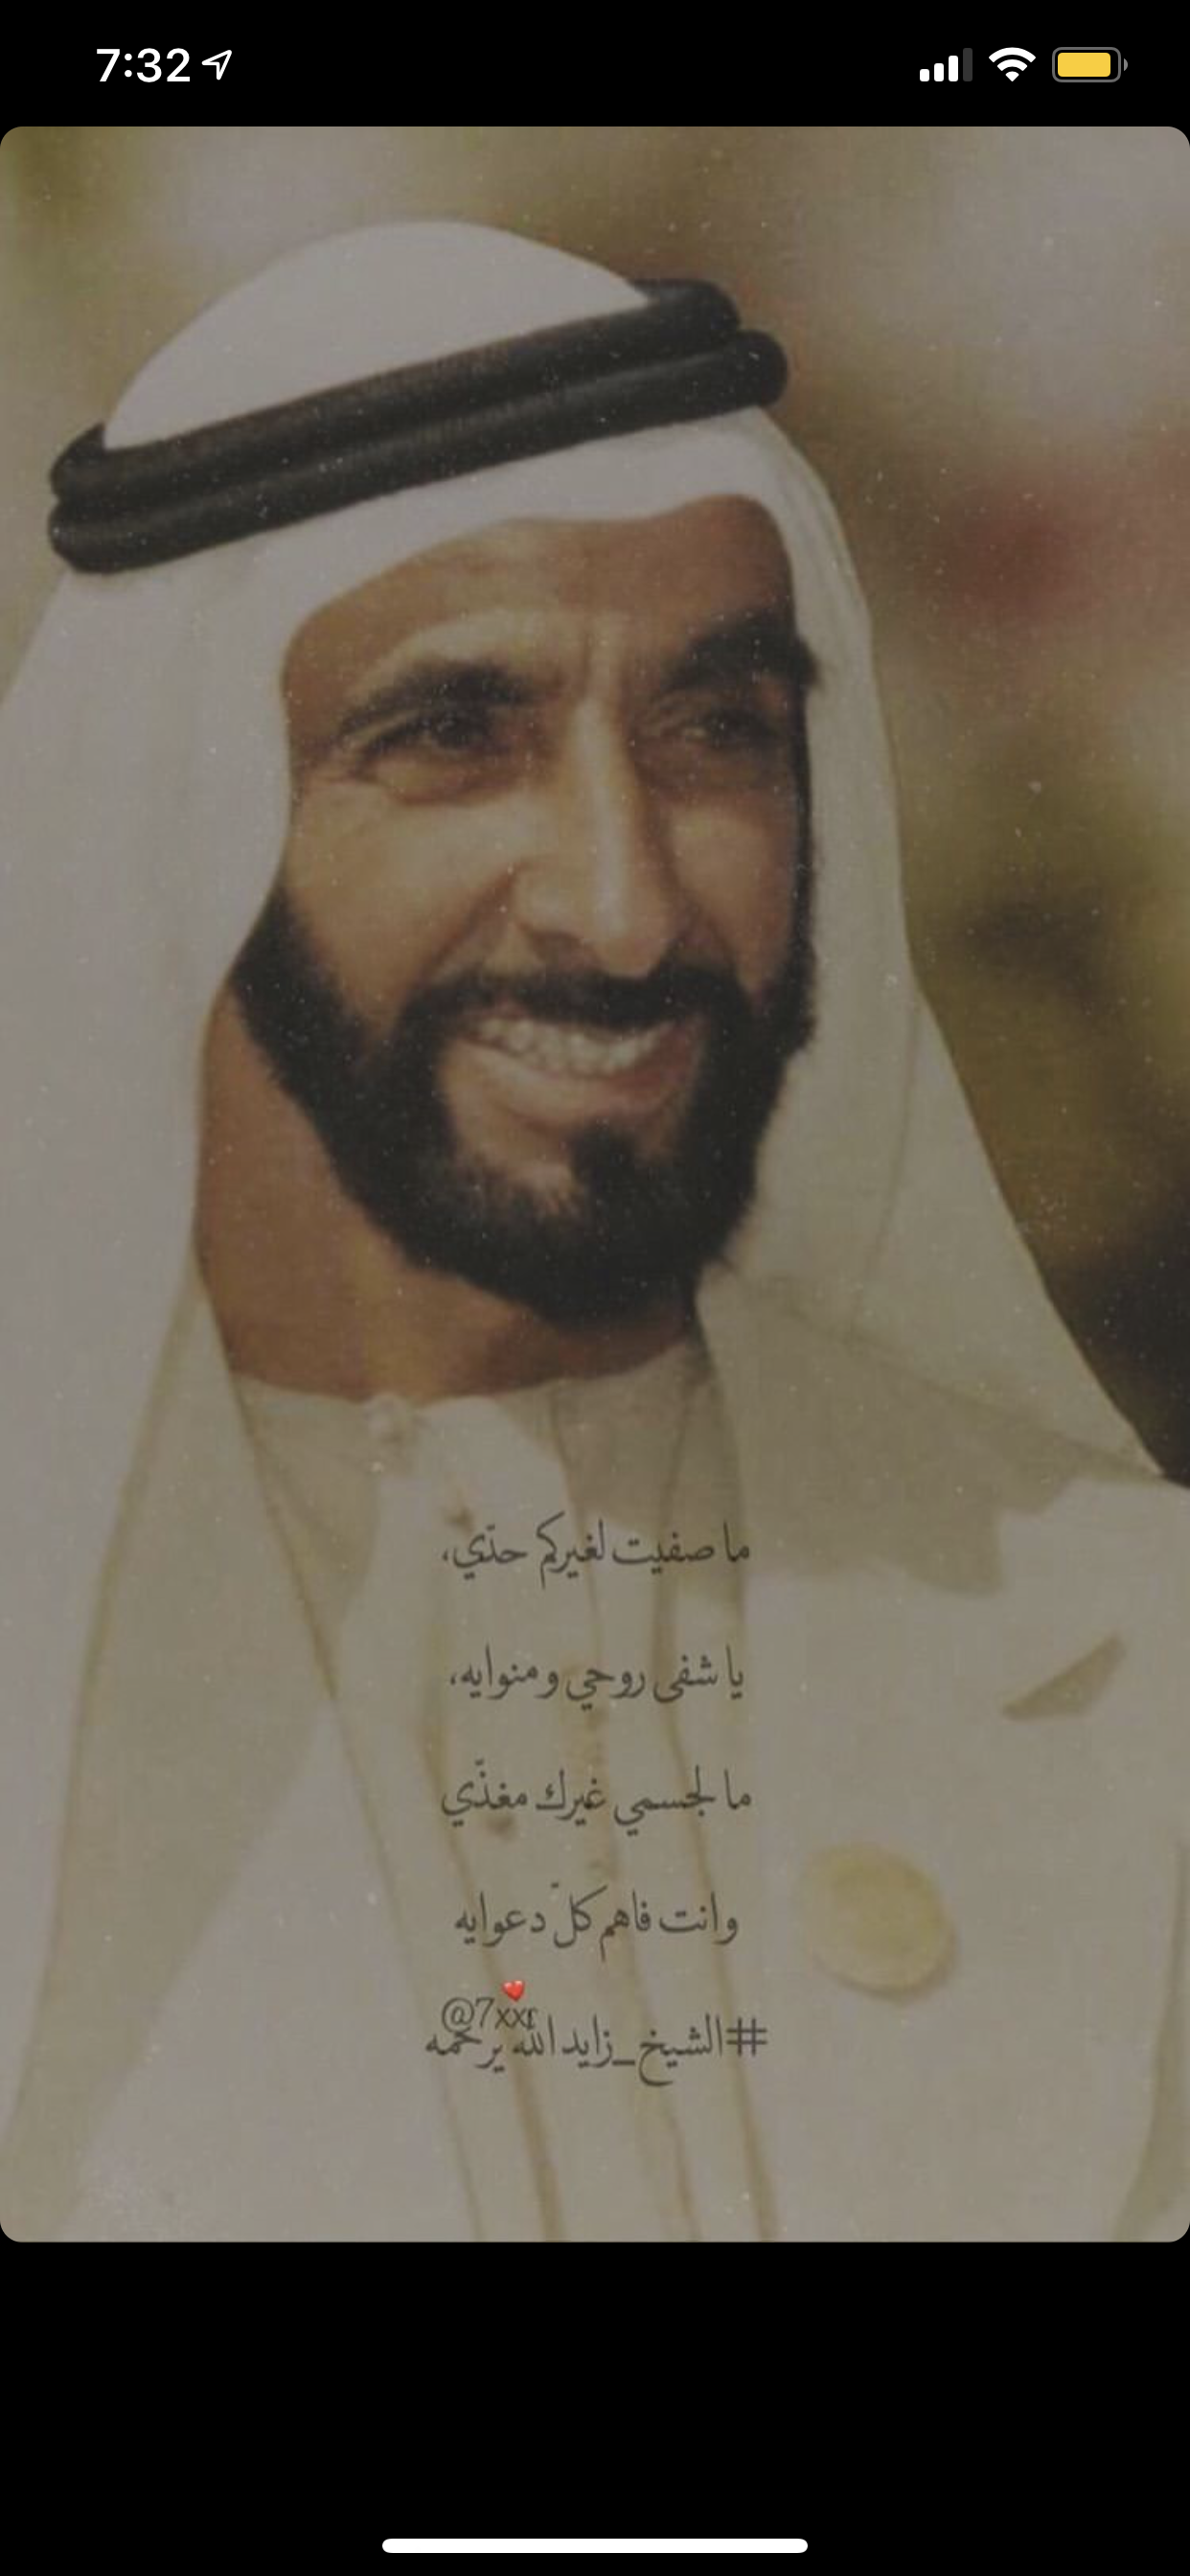 Pin By M Alremeithi On الشيخ زايد In 2021 Royal Family Photo Baseball Cards